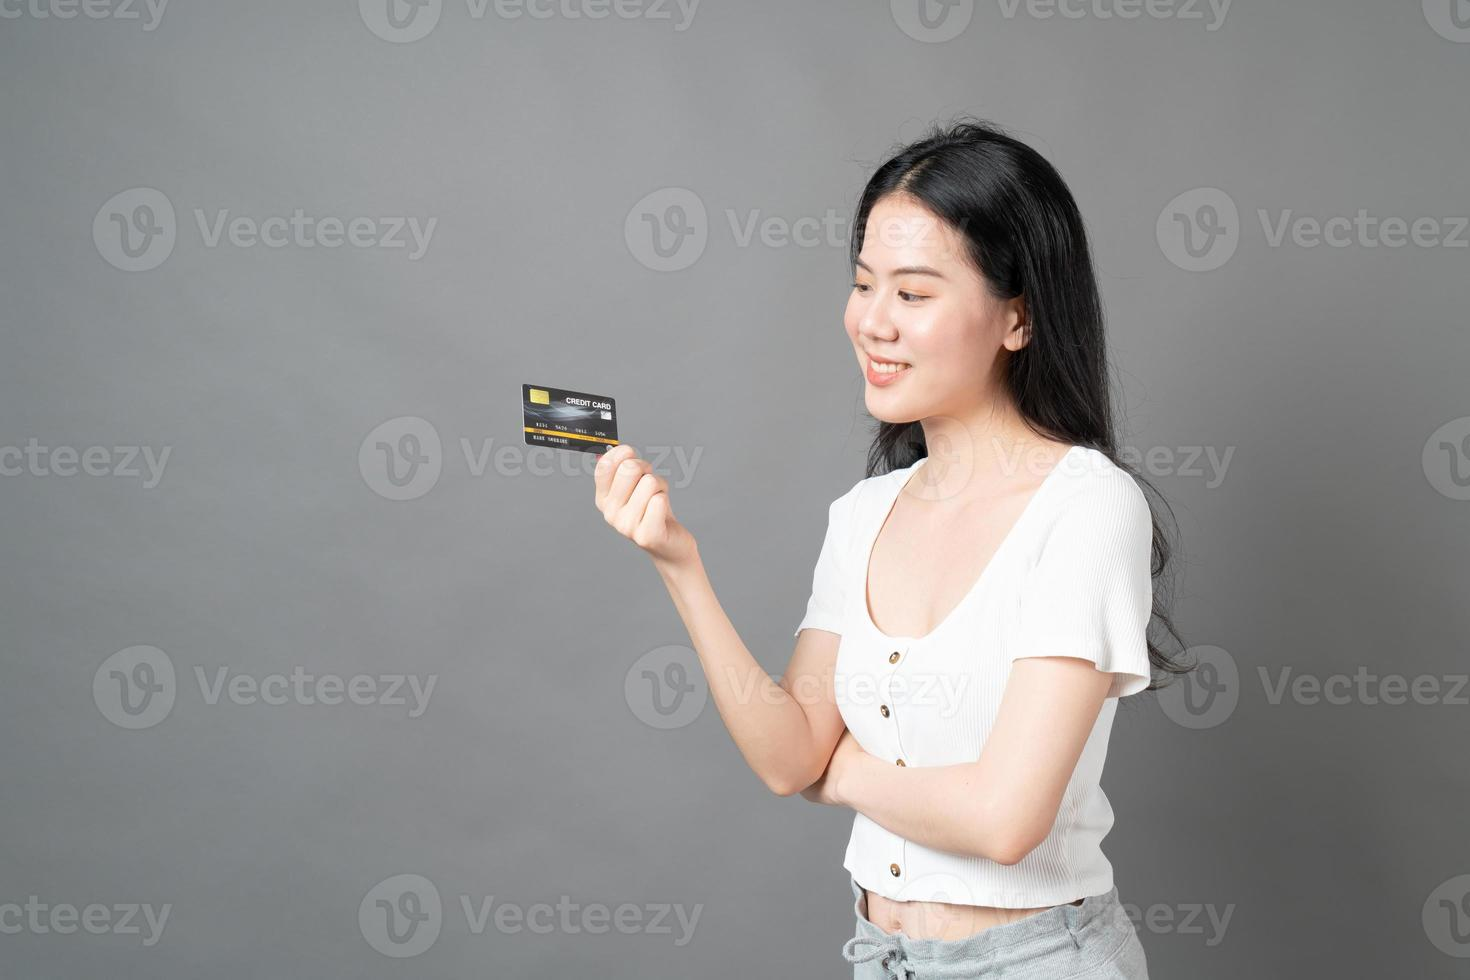 Asian woman with happy face and presenting credit card in hand showing trust and confidence for making payment photo